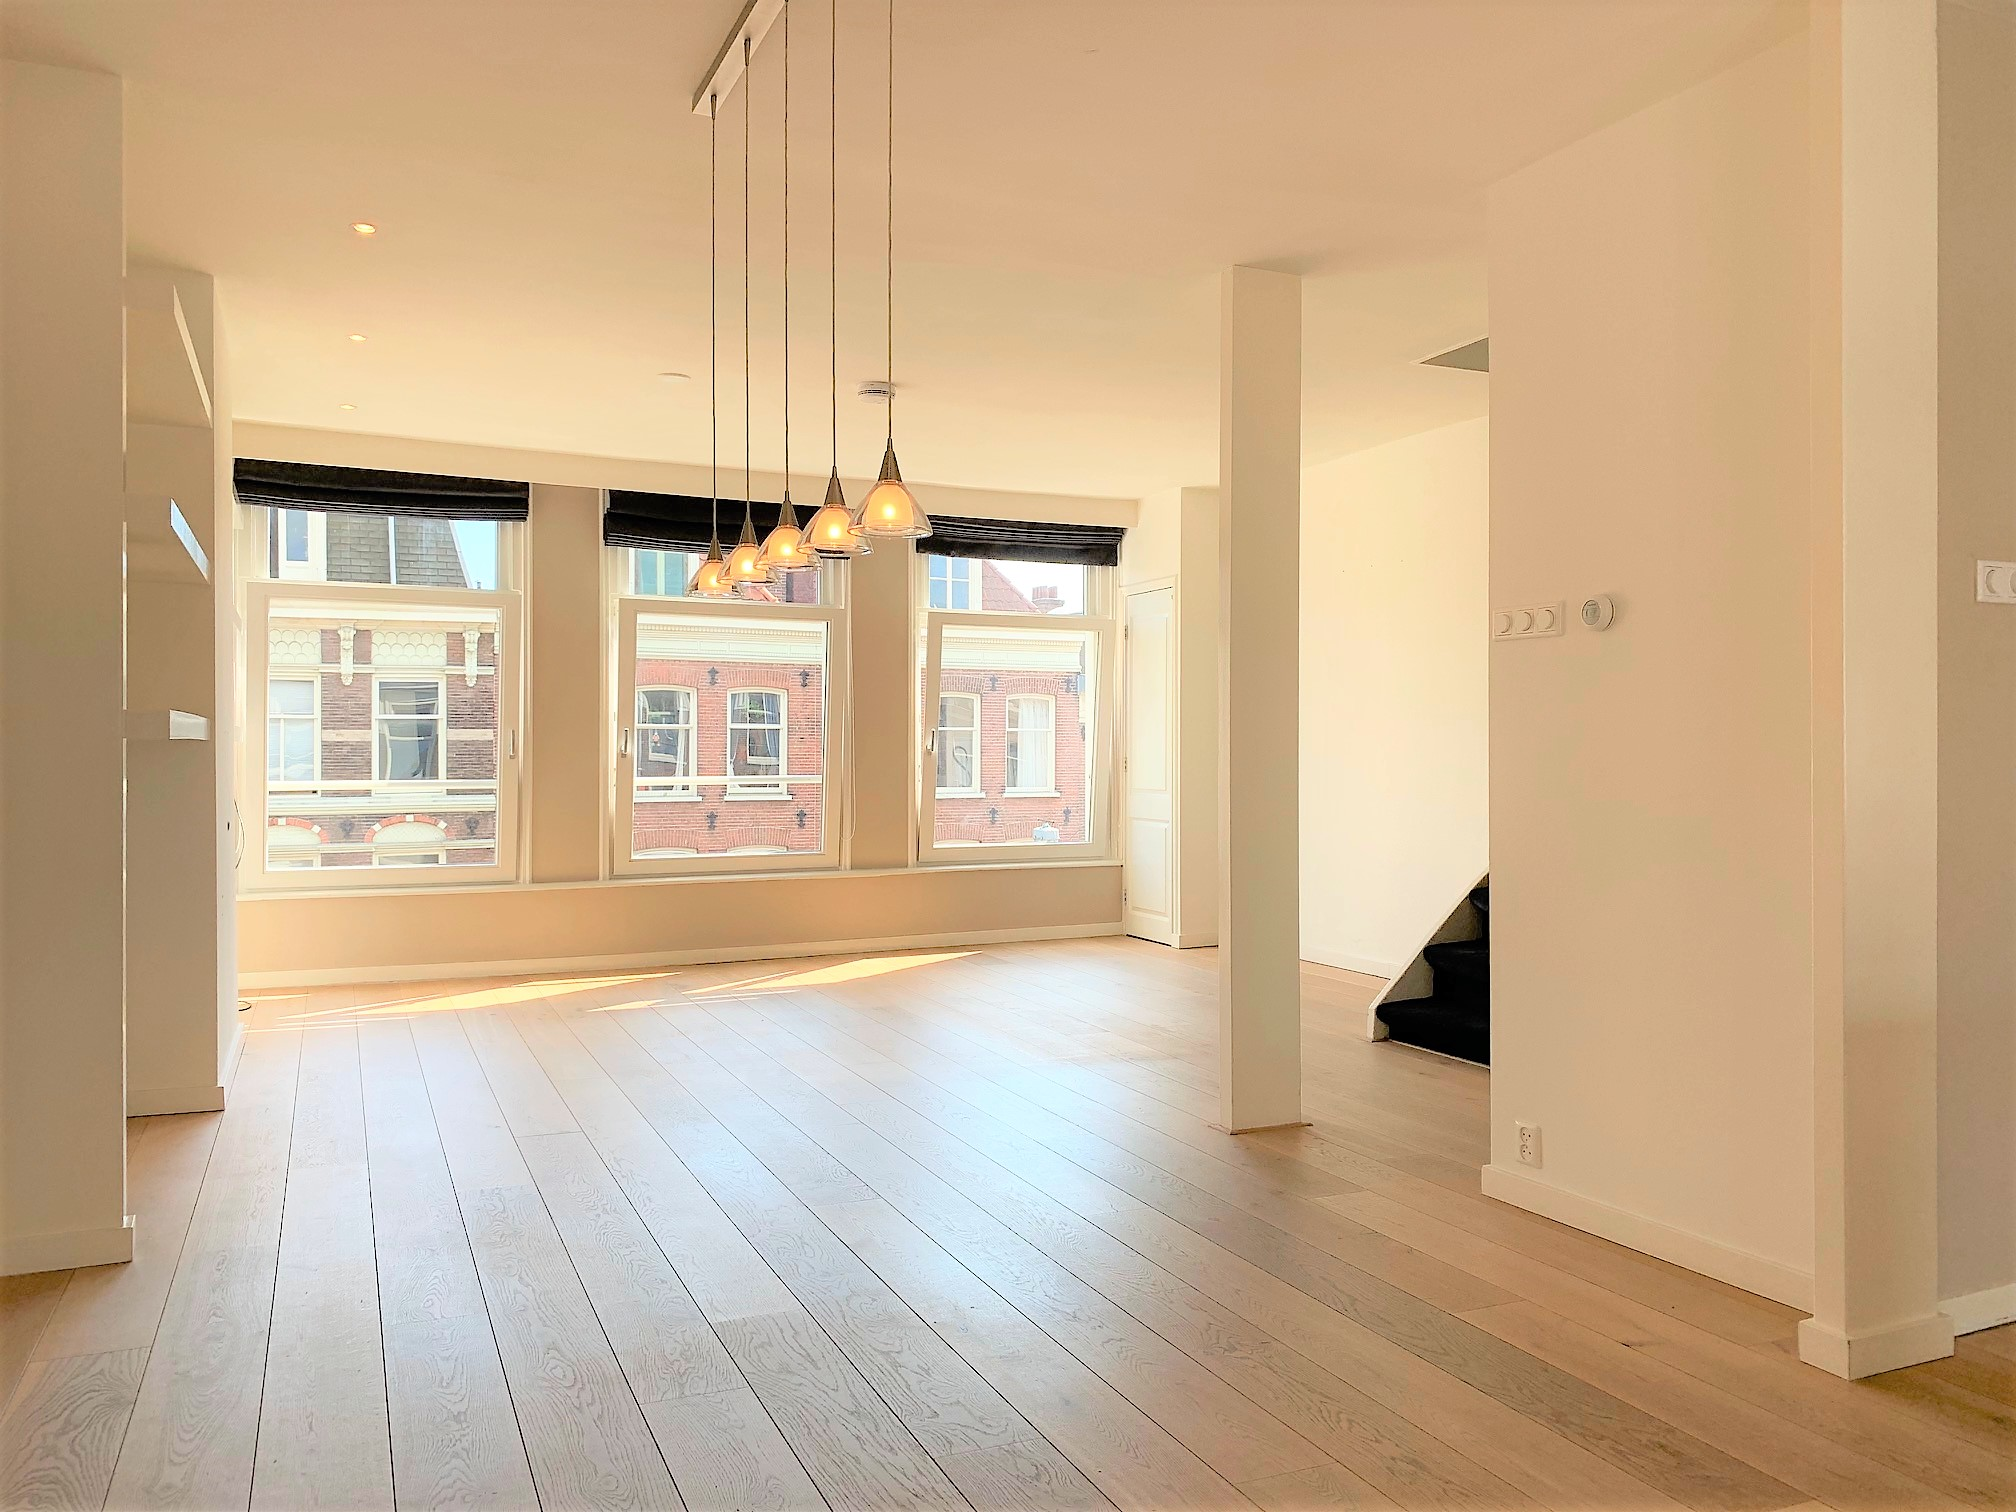 H En M Home Amsterdam Houses And Apartments For Rent In Amsterdam 446 Rentals Found